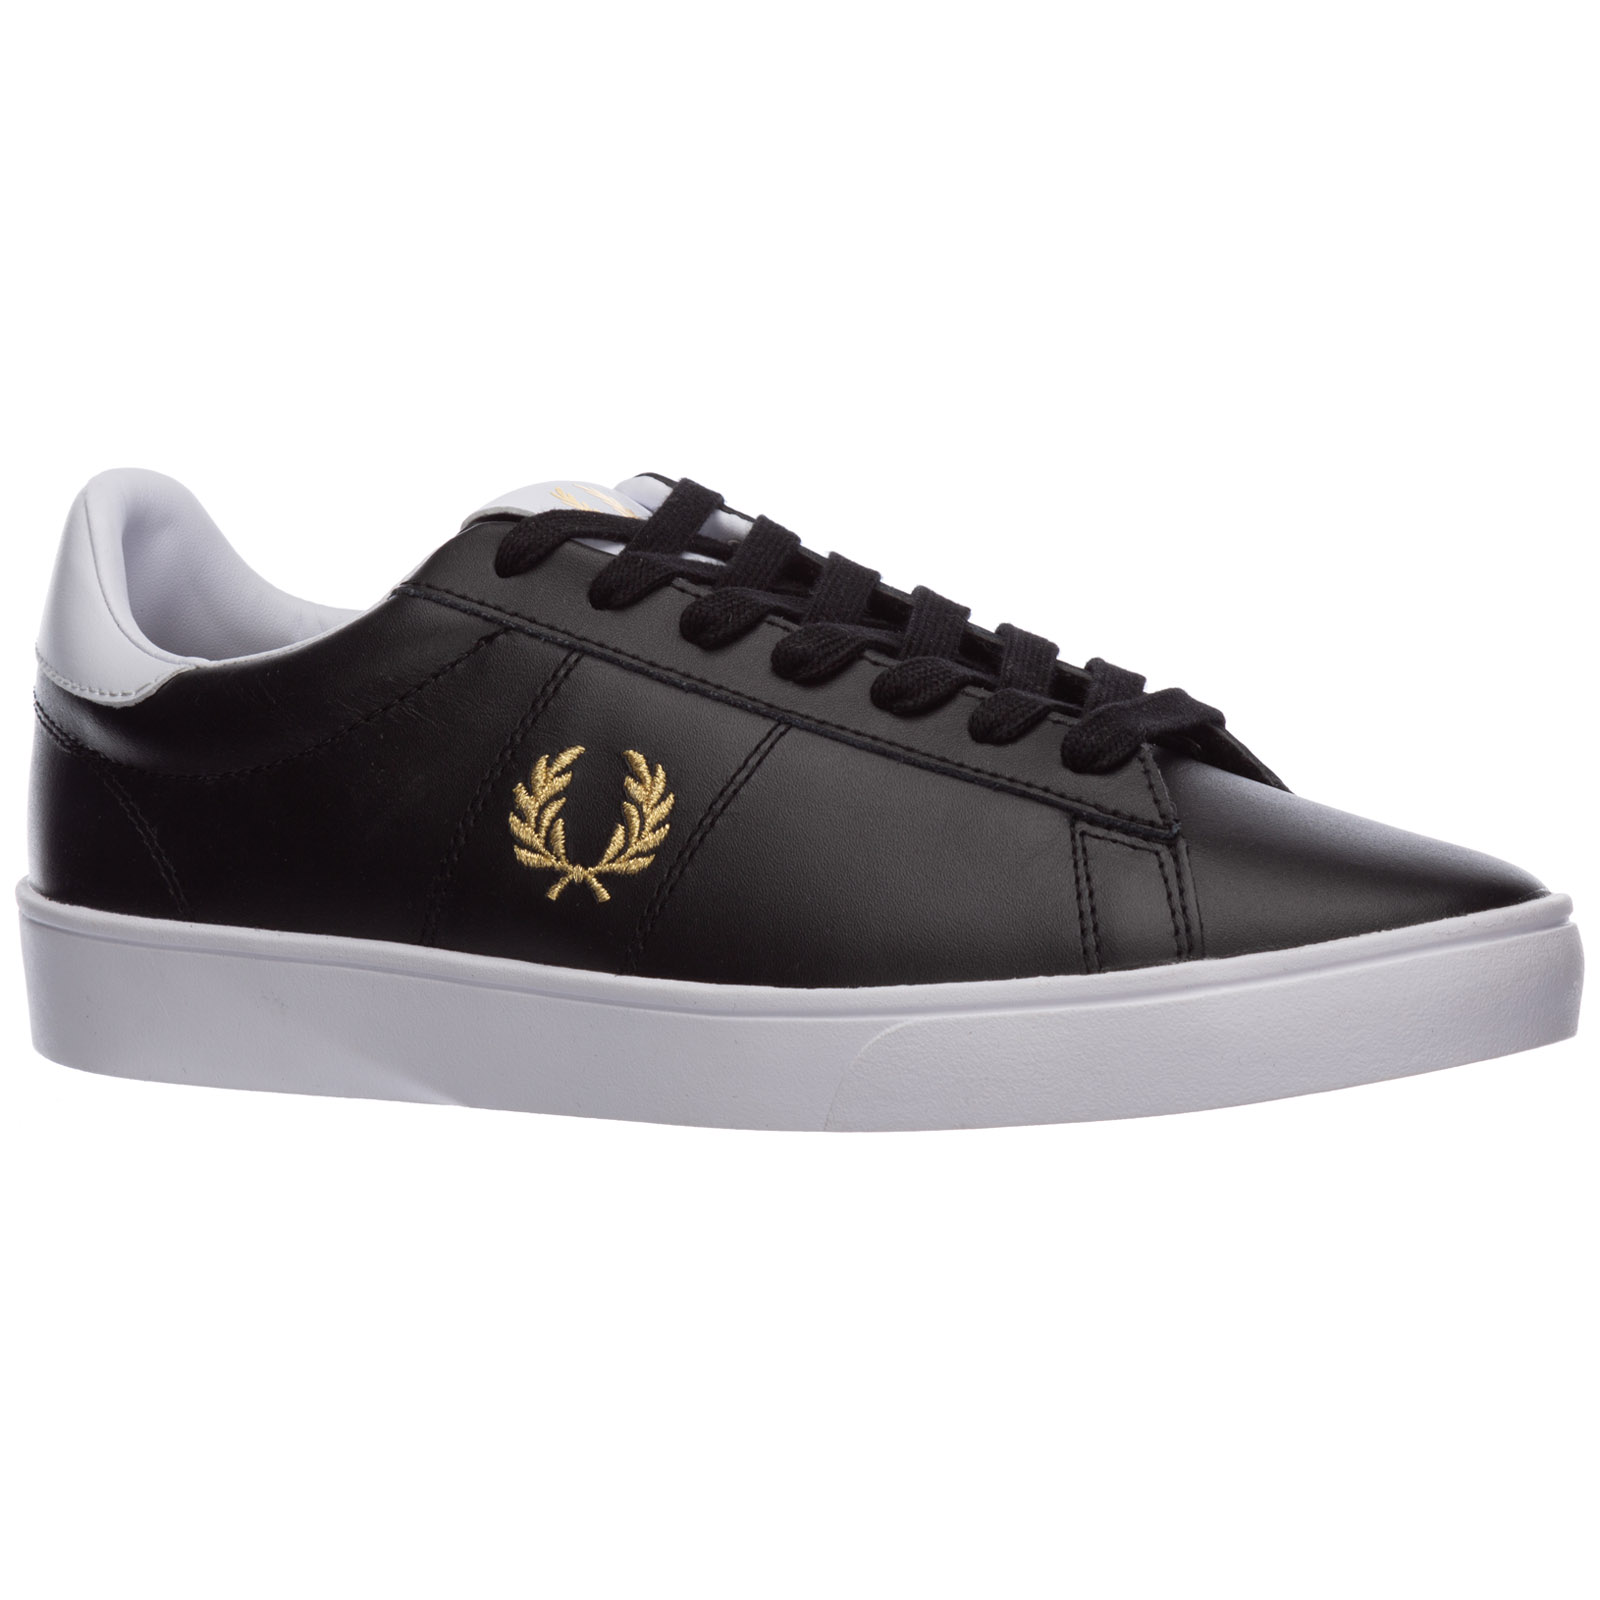 Sneakers Fred Perry spencer B8255 nero